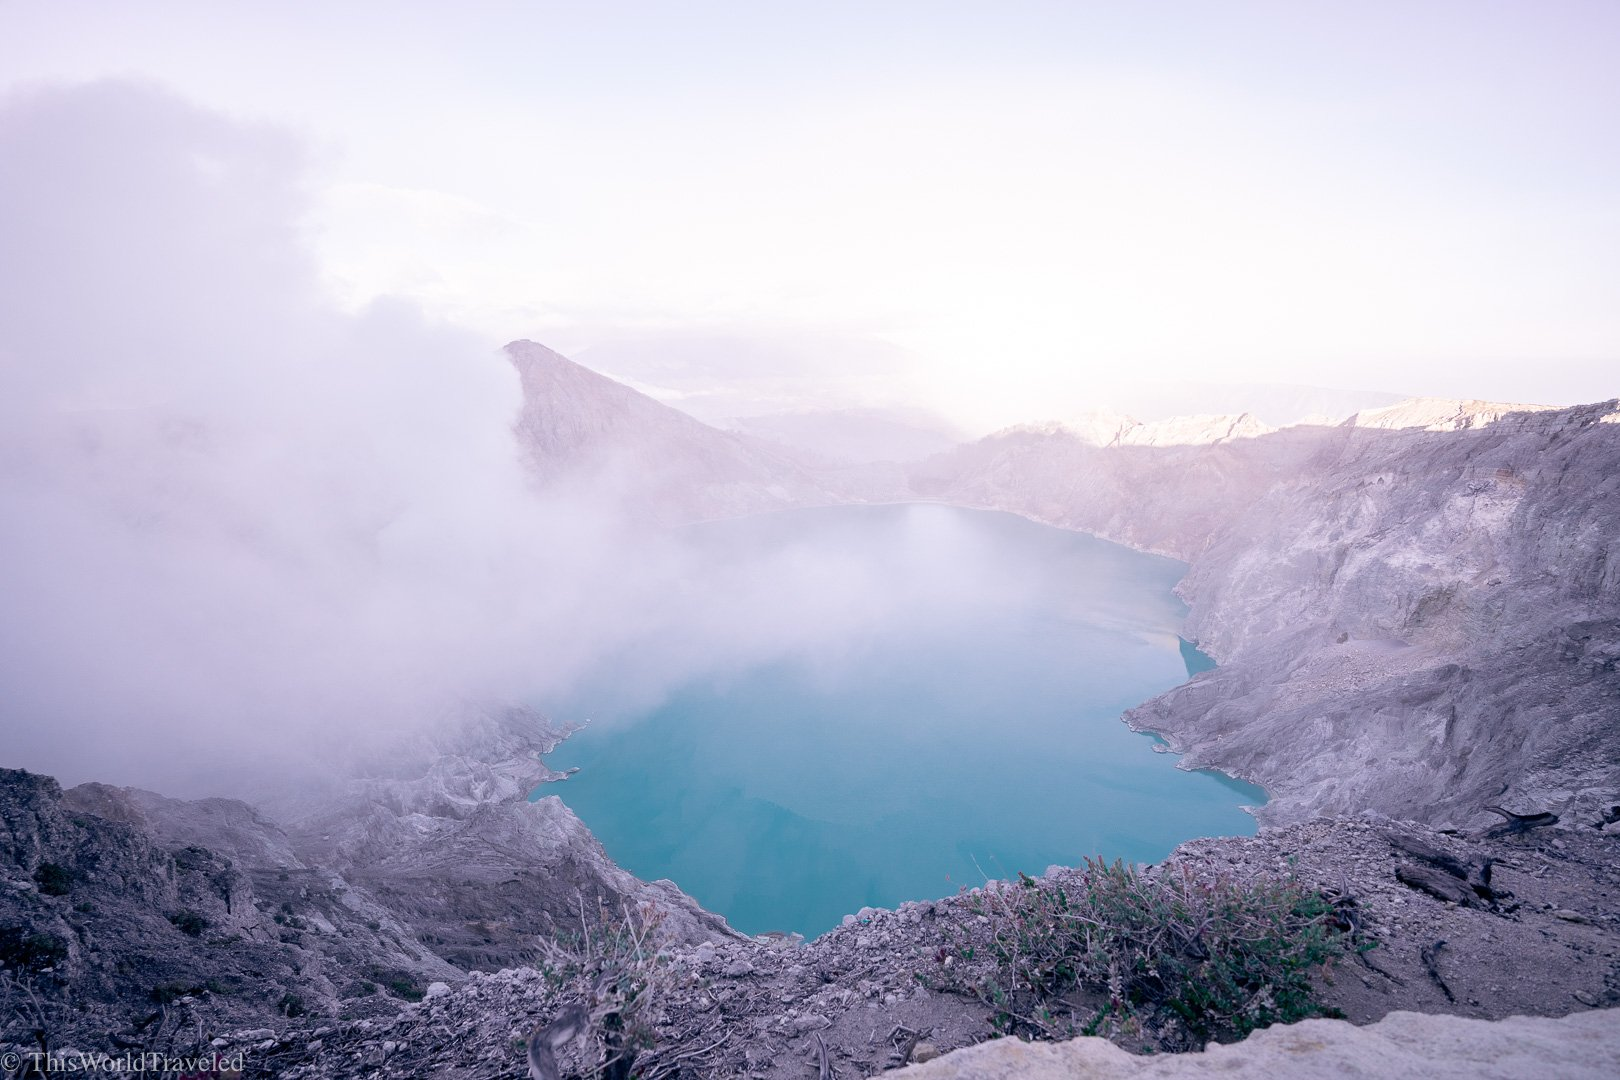 The Ijen Crater in Java: How to Visit Kawah Ijen Without a Tour